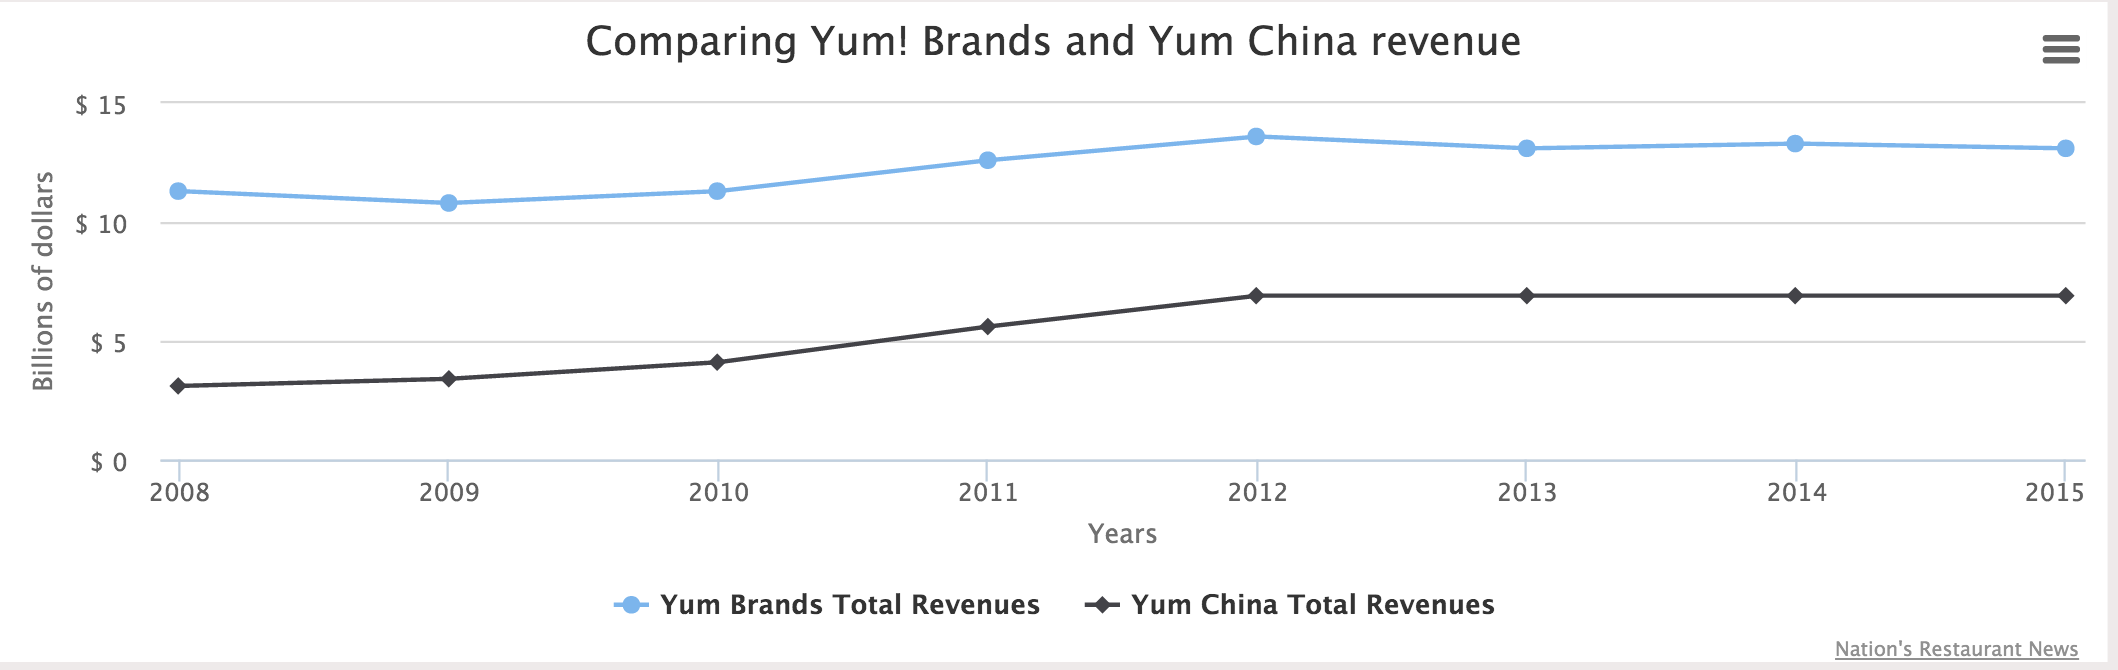 Yum Brands Eyes Growth After China Division Spinoff Nations